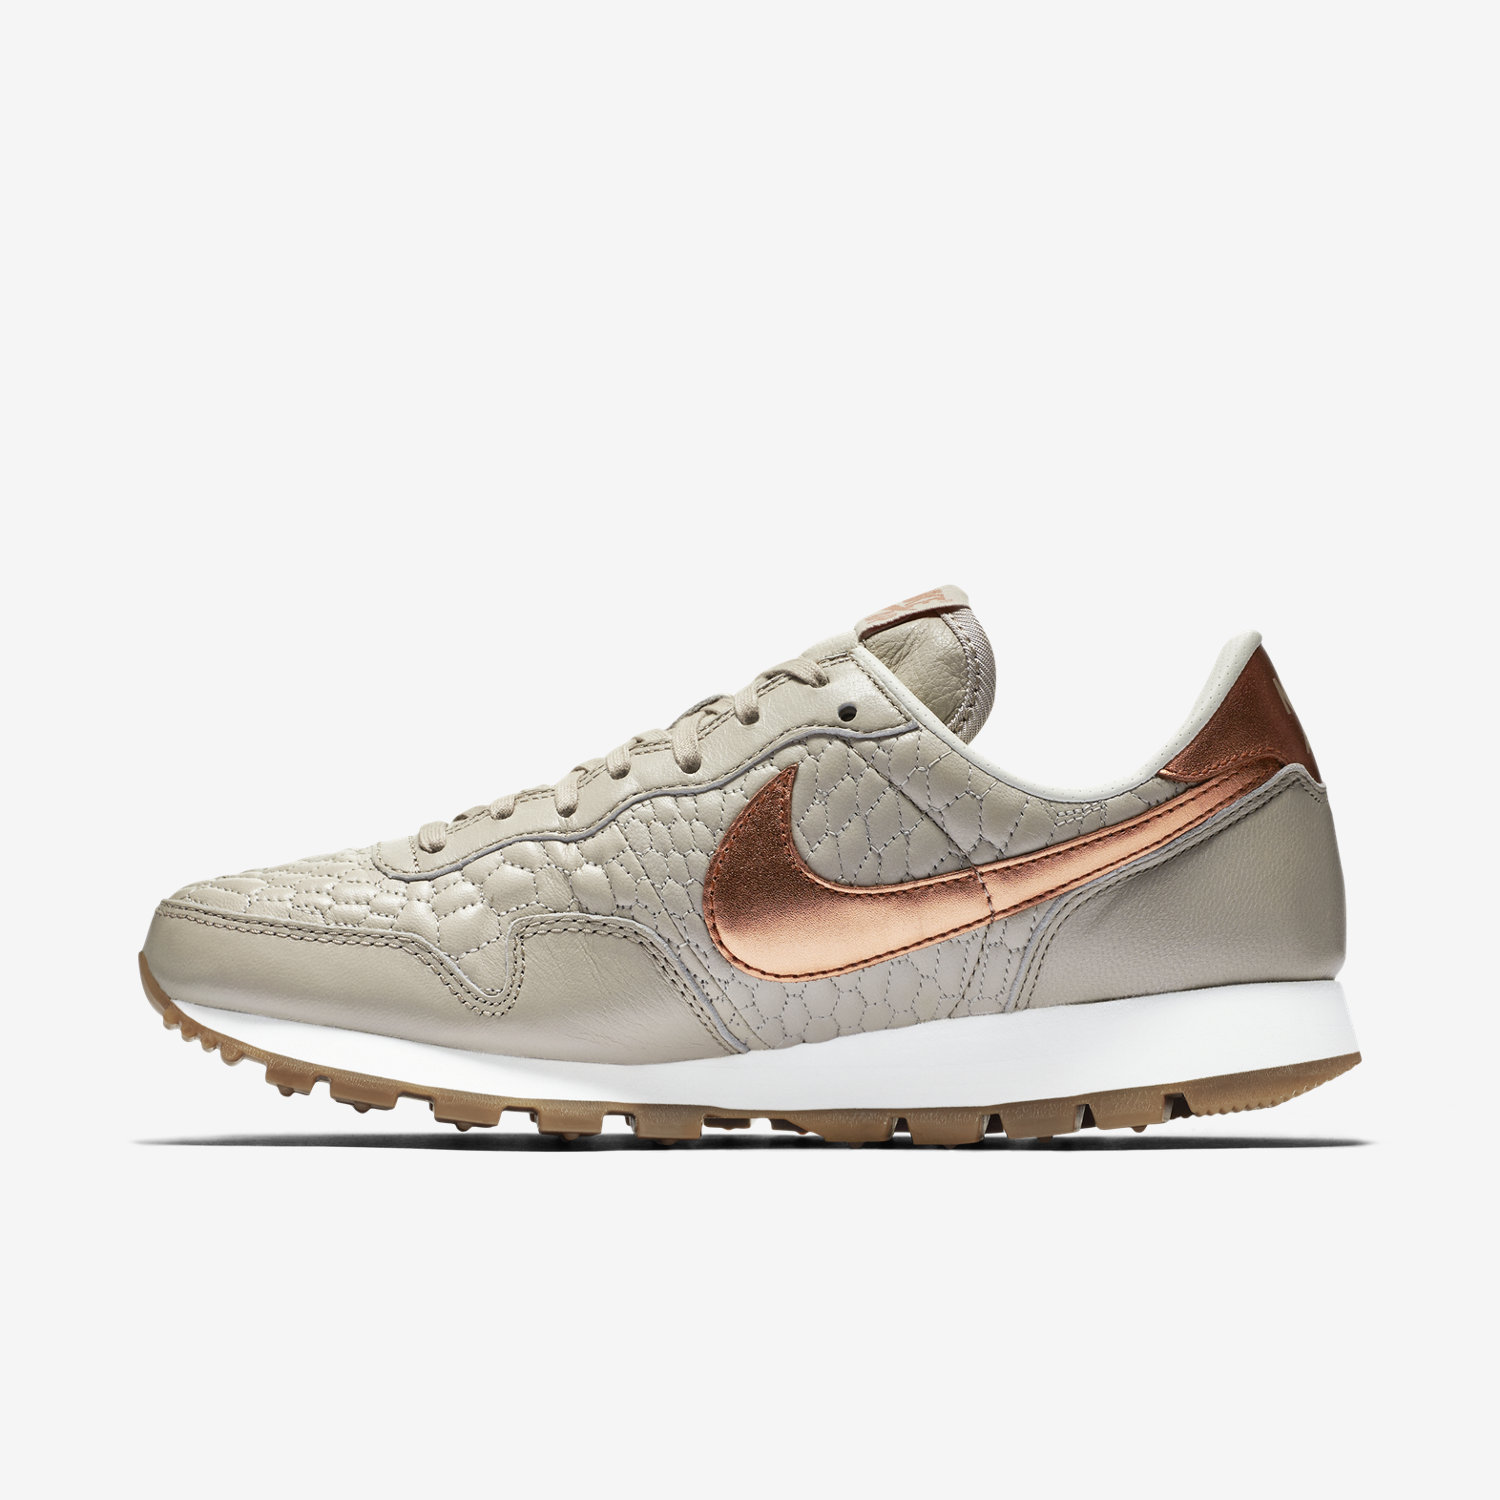 new products d7dc0 7309b Mode Nike Air Pegasus 83 Femme Grossiste Mao348